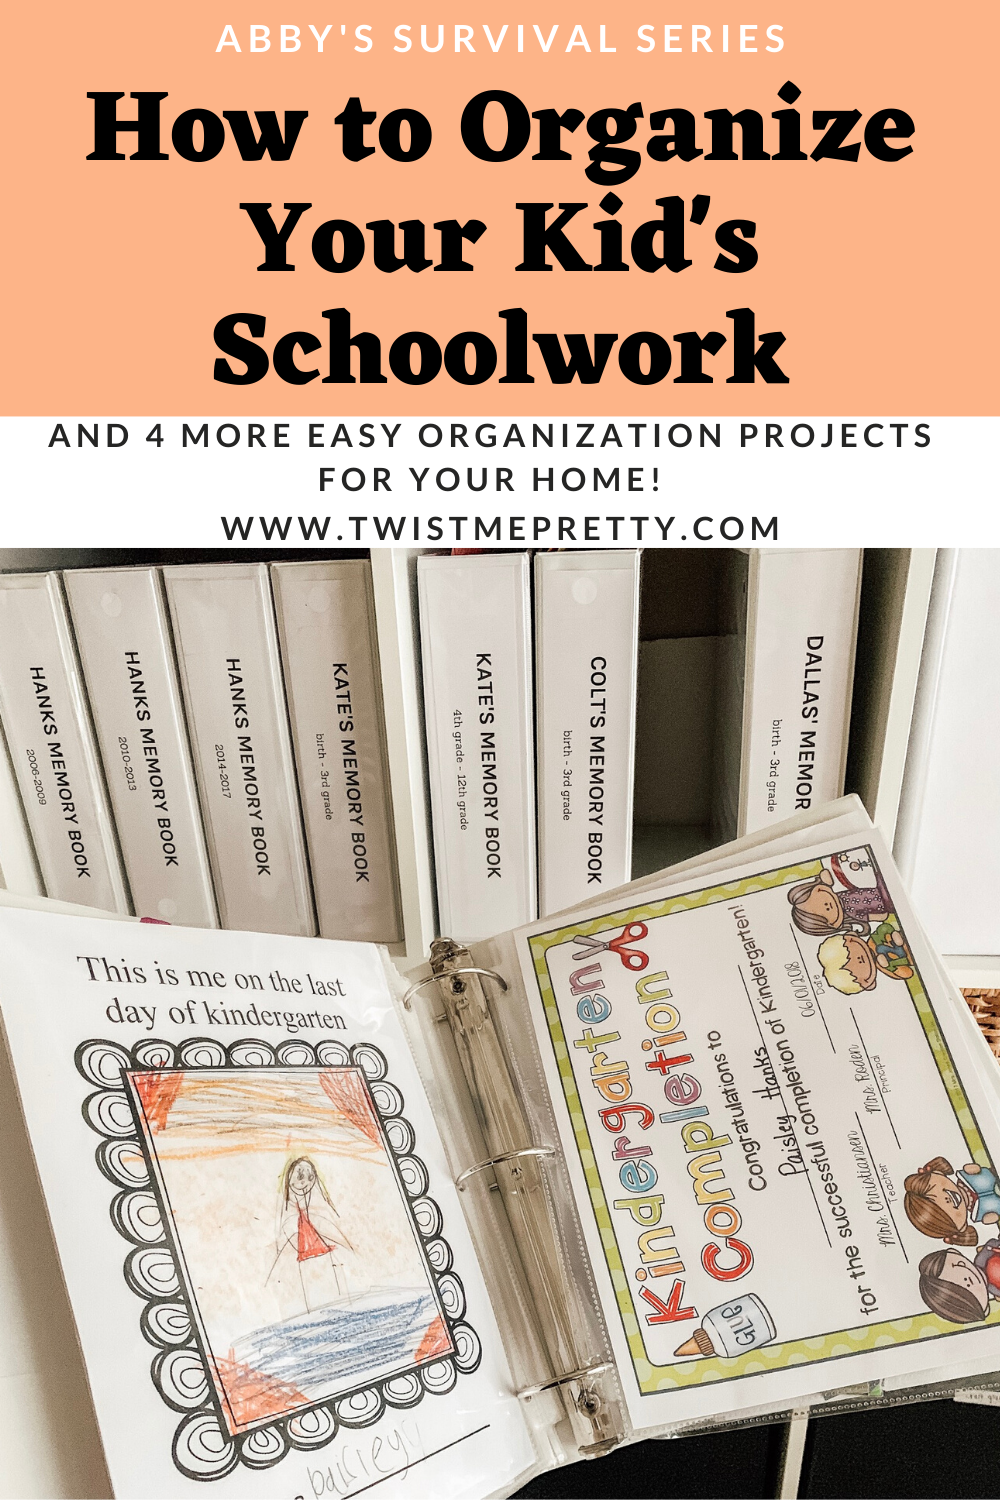 Abby's Survival Series- How to Organize Your Kid's Schoolwork by Homegrown Traditions. www.TwistMePretty.com